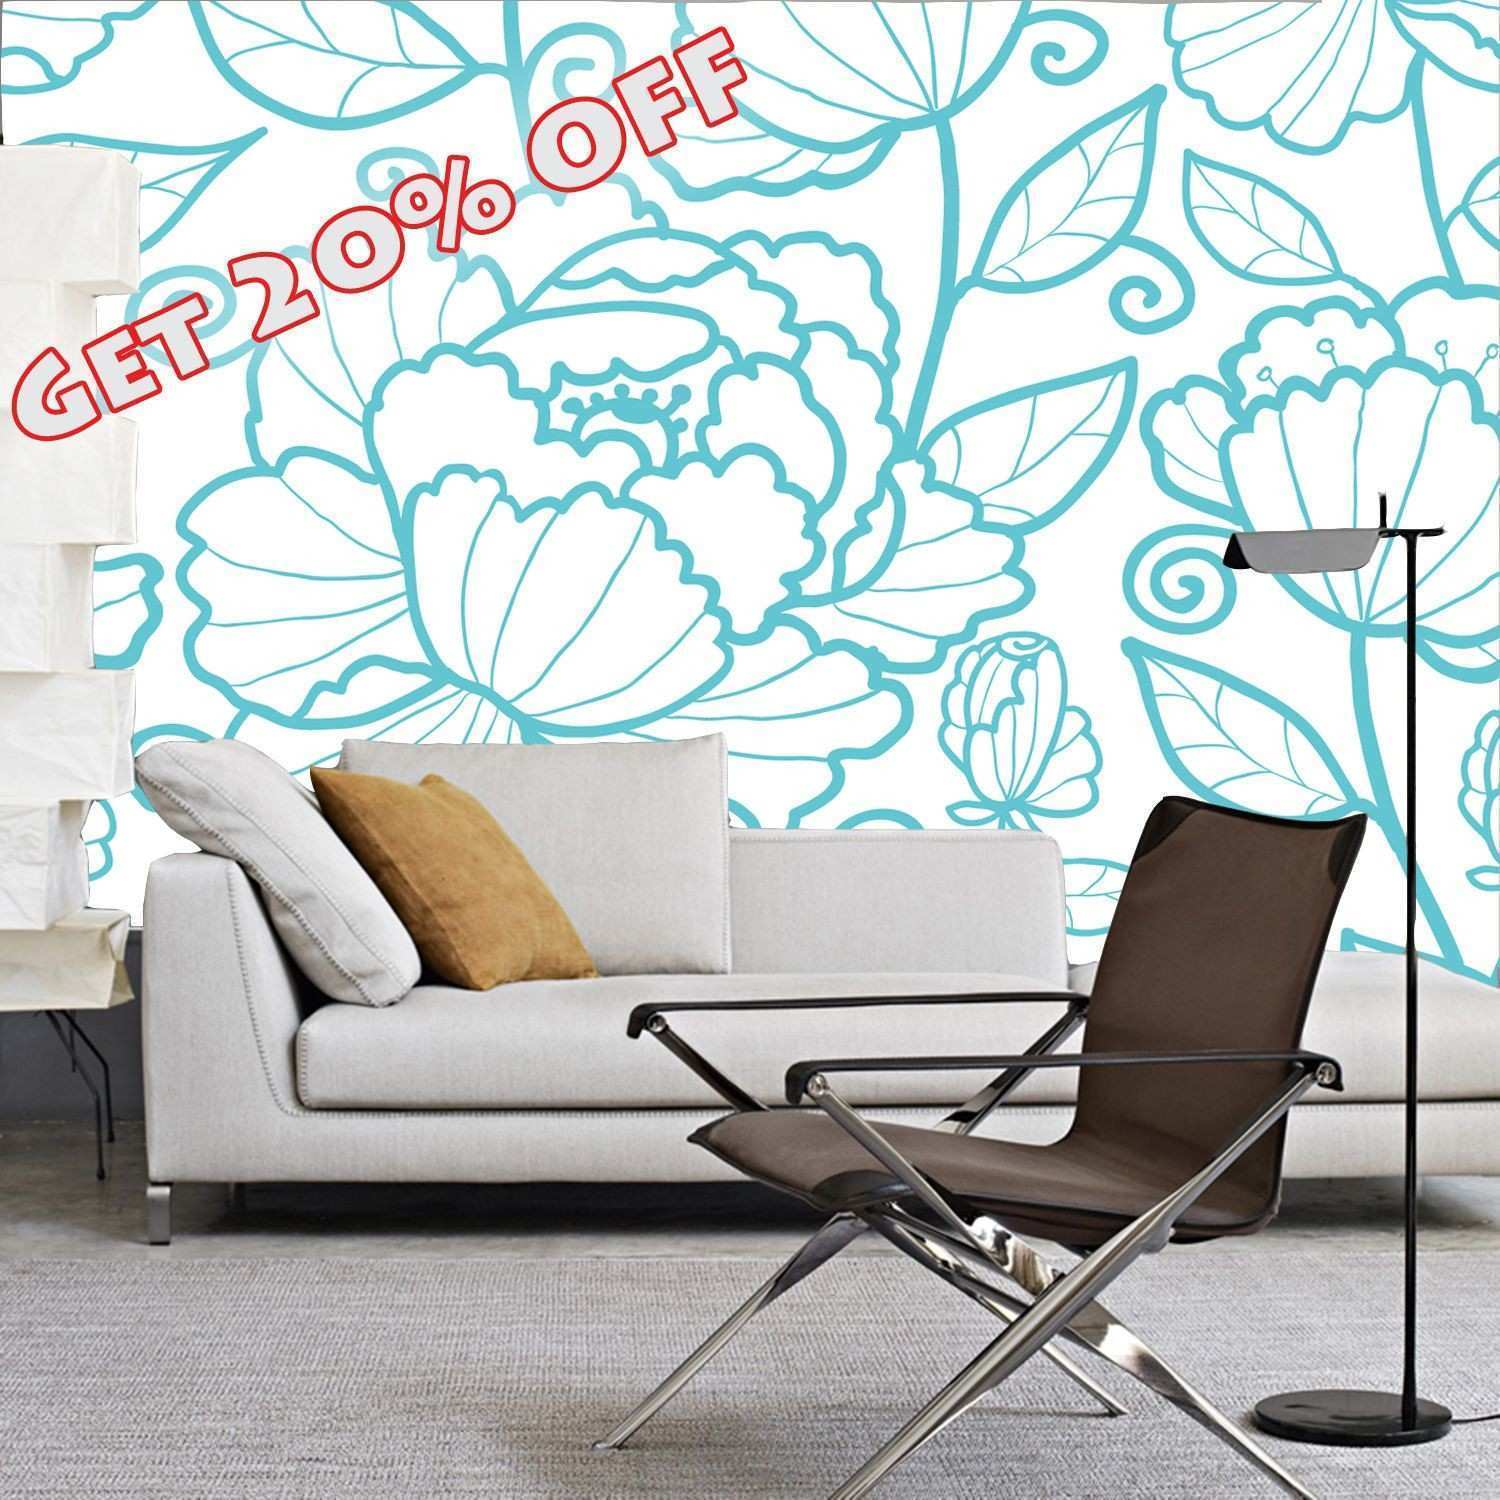 Get off Wall mural self adhesive wallpaper self adhesive